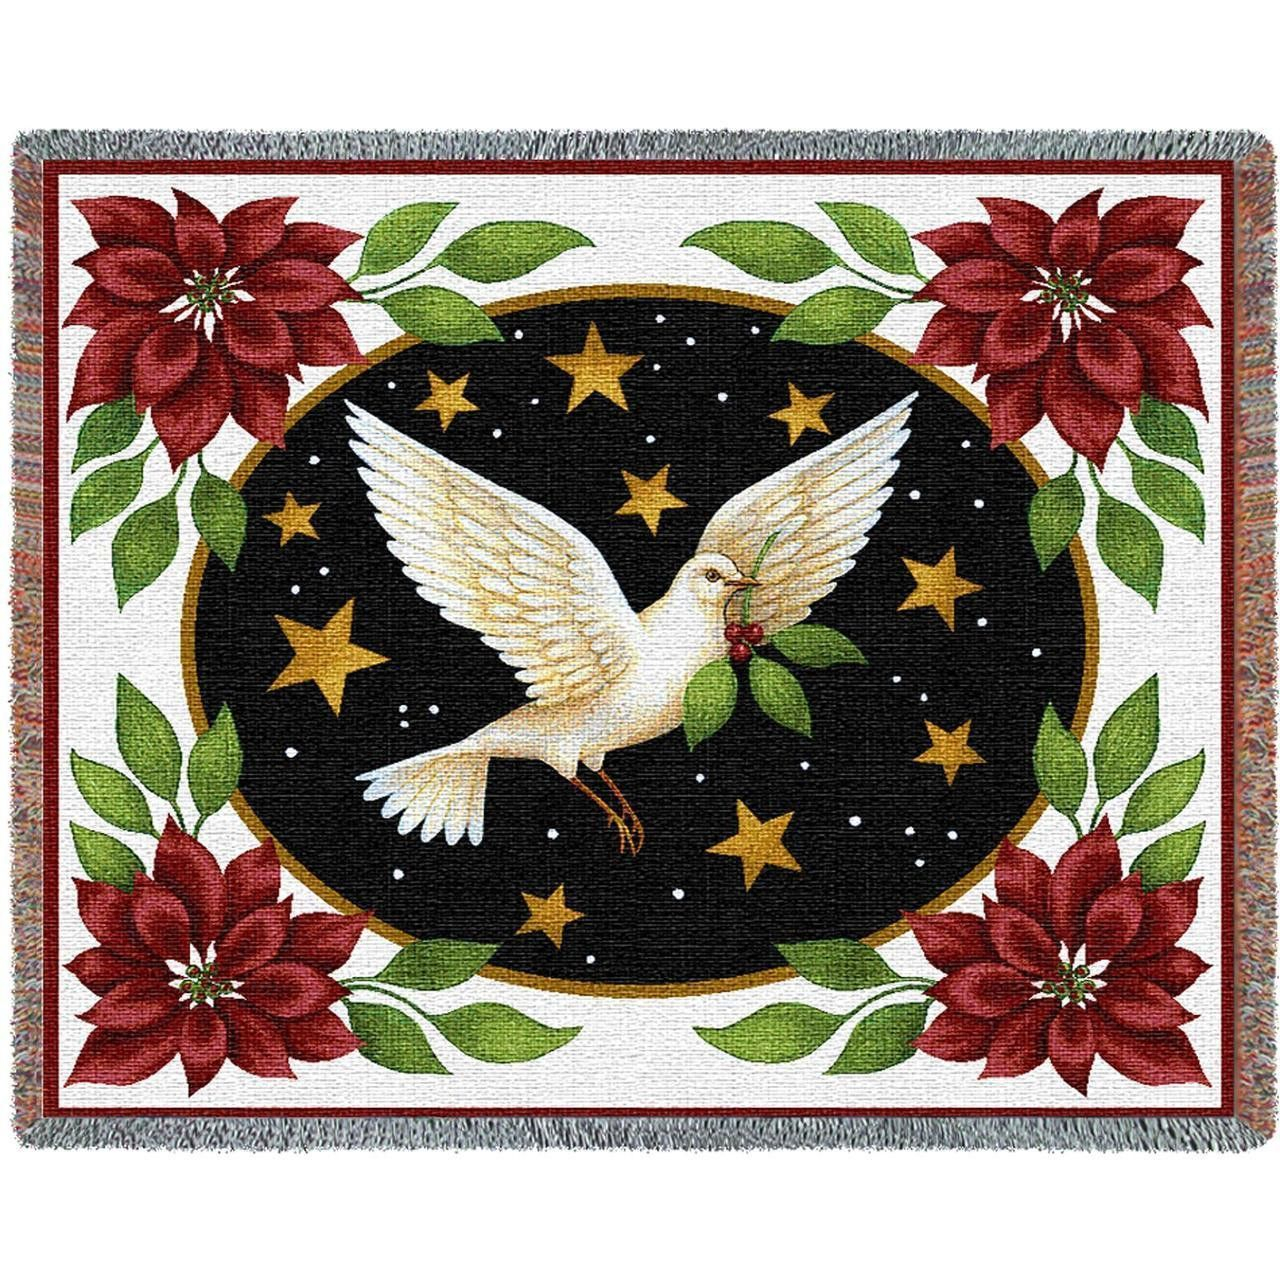 Dove And Poinsettia Blooms Art Tapestry Throw | Tapestry In 2018 Blended Fabric Blessings Of Christmas Tapestries (View 10 of 20)